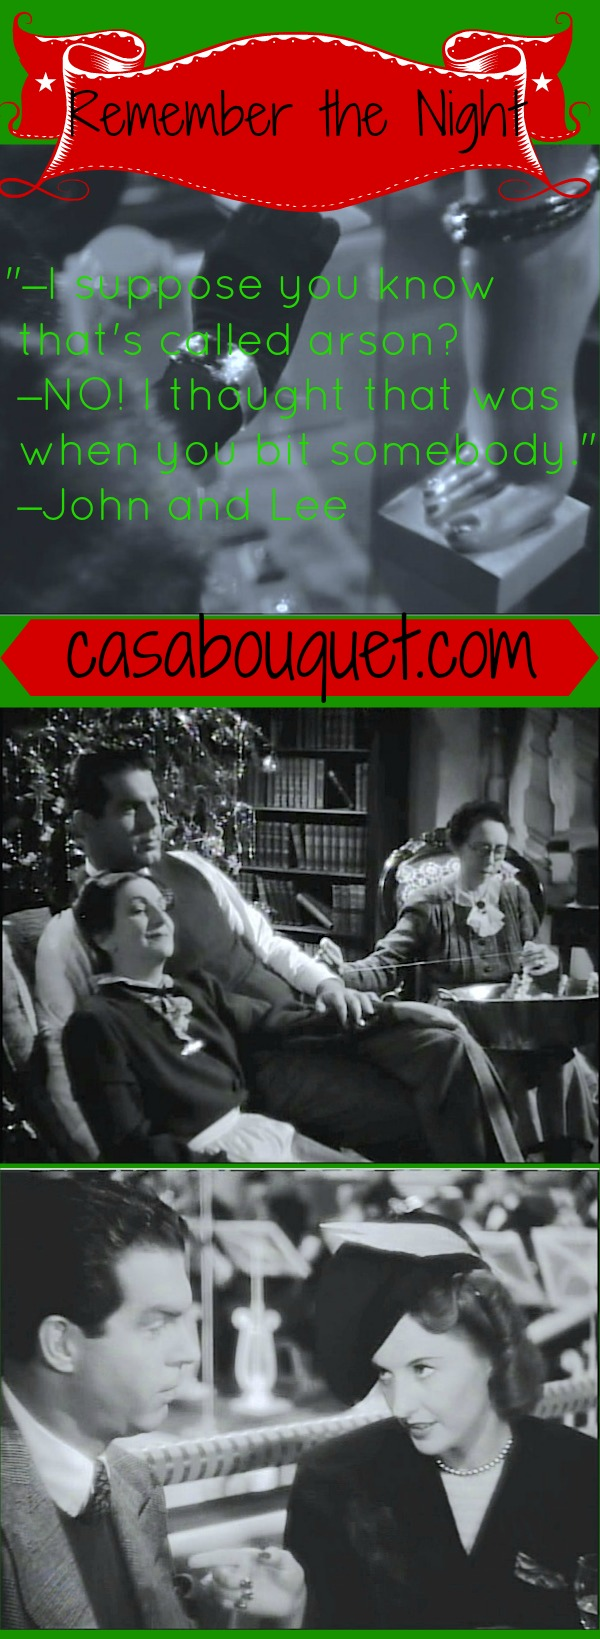 Barbara Stanwyck and Fred MacMurray travel cross country in a Preston Sturges holiday romantic comedy. From Lisa's Home Bijou: Remember the Night (1940)